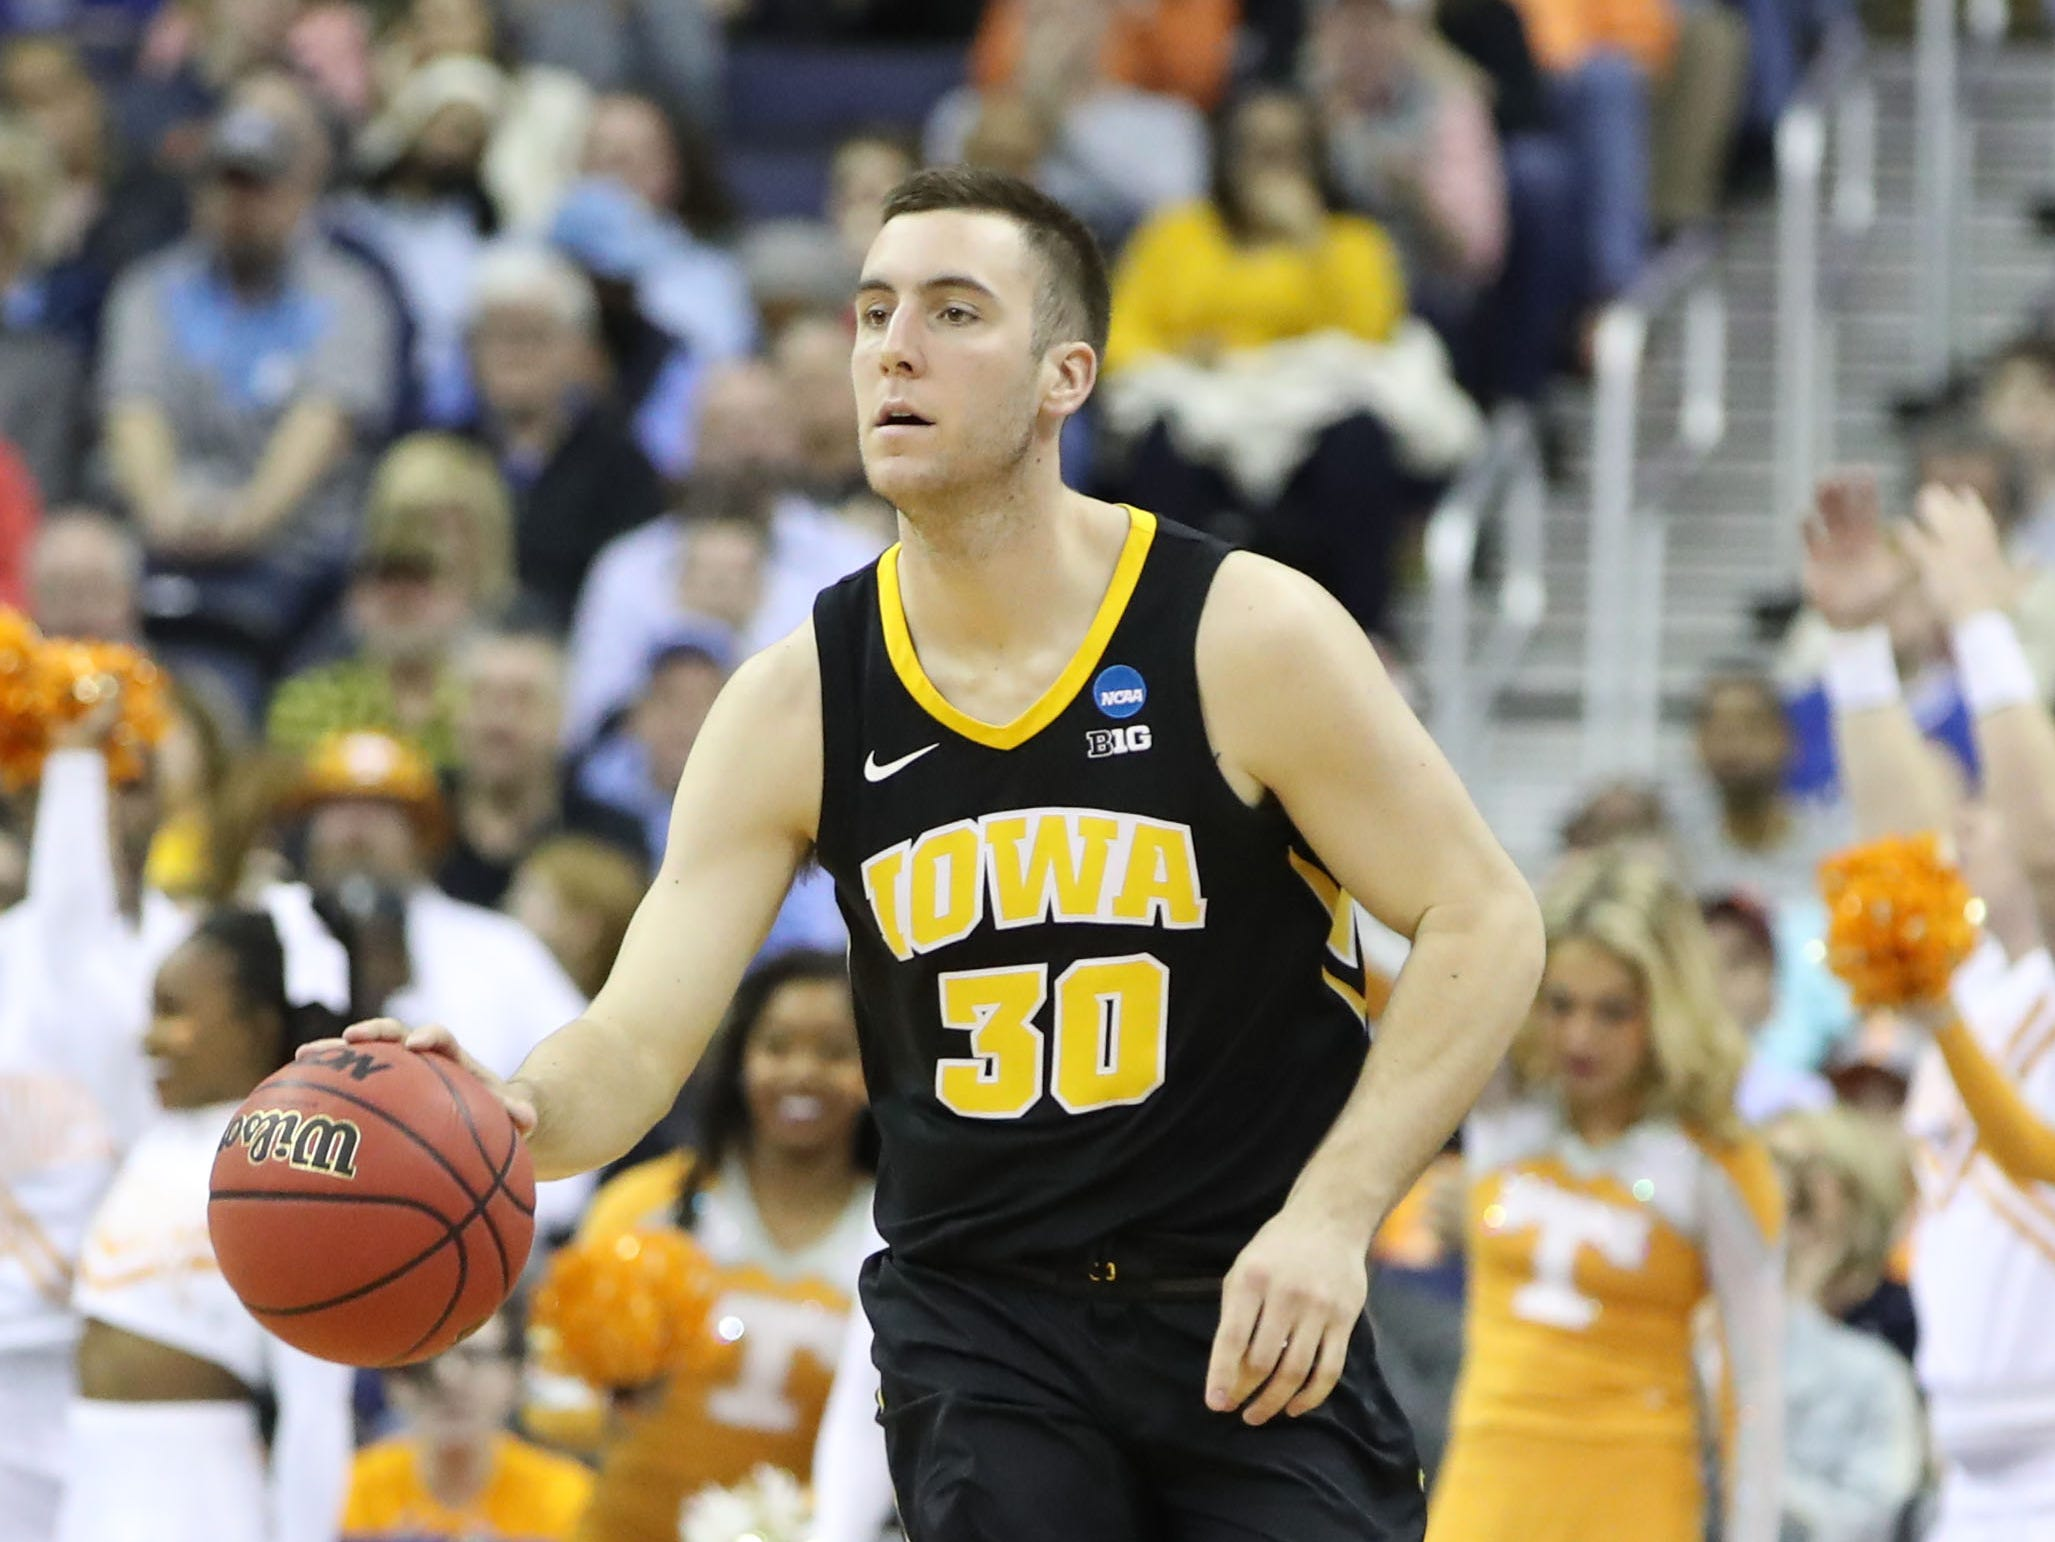 Iowa Hawkeyes guard Jordan Bohannon (3) dribbles down the court in the second half against the Tennessee Volunteers in the second round of the 2019 NCAA Tournament at Nationwide Arena.